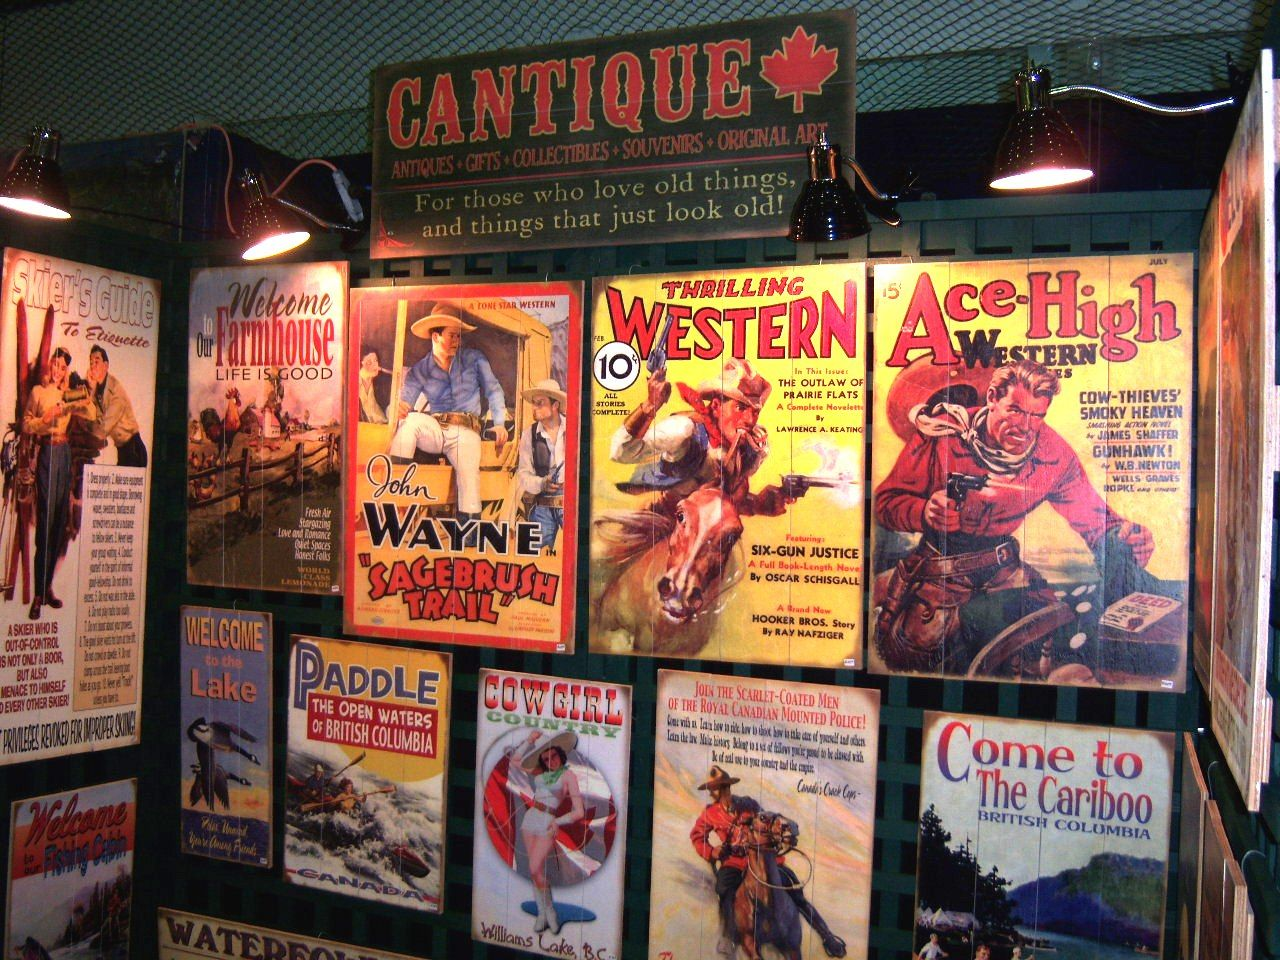 Rustic decor for cabins, cottages, and lake houses featuring old-fashioned road & trail marker signs from Western Canada. Cantique is also the source in Canada for vintage, personalized signs on wood or metal.